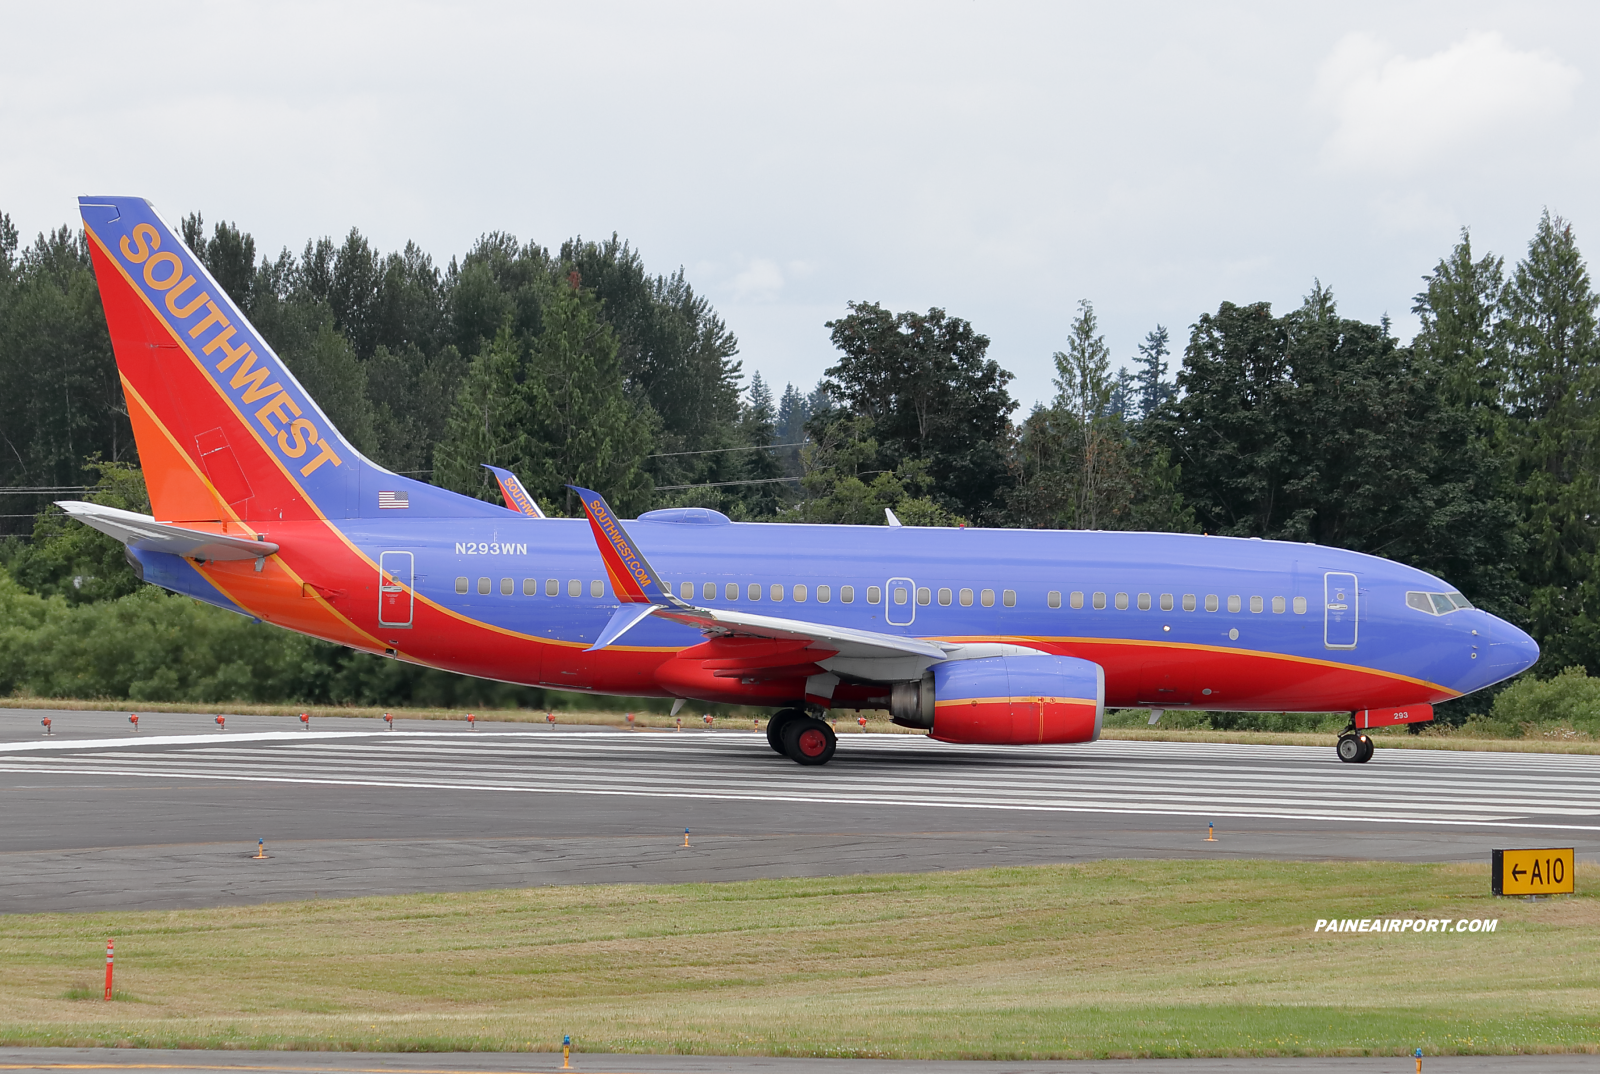 Southwest Airlines 737 N293WN at KPAE Paine Field